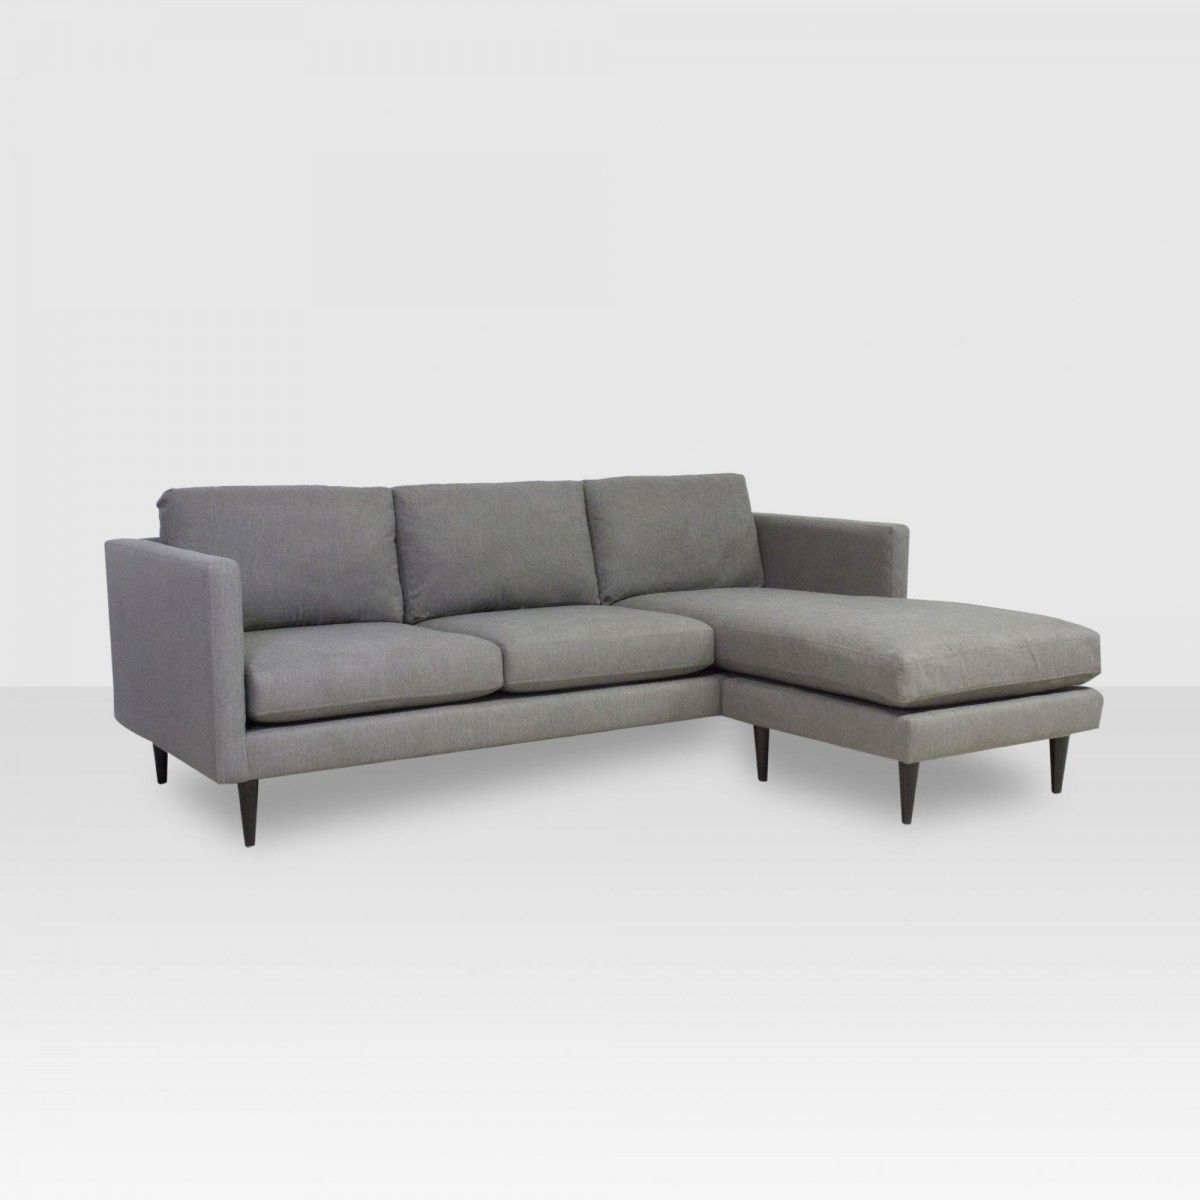 Halifax Inspirational Sofa Bed Pearson Sectional W Ottoman Living Room Inspiration Sofas